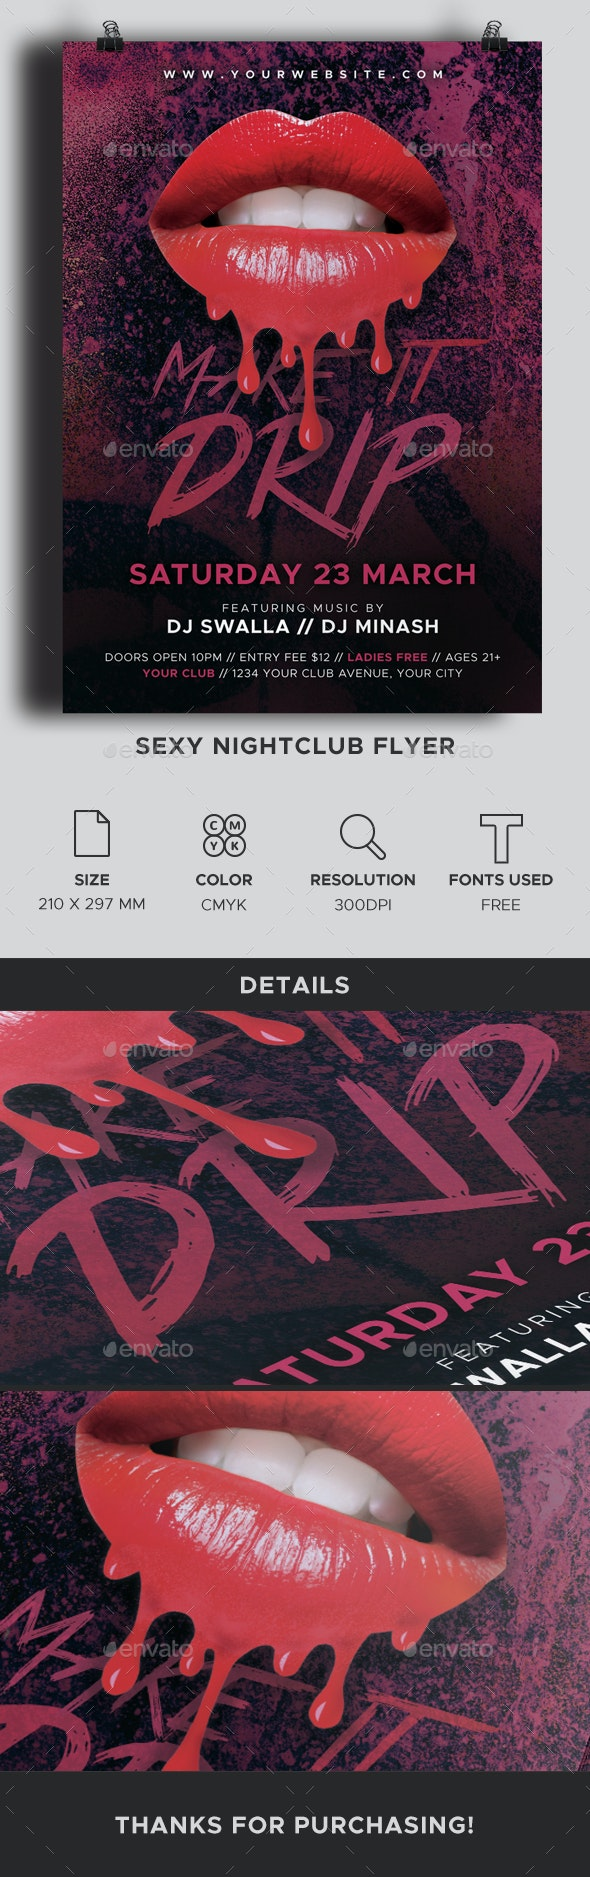 Sexy Nightclub Flyer - Clubs & Parties Events